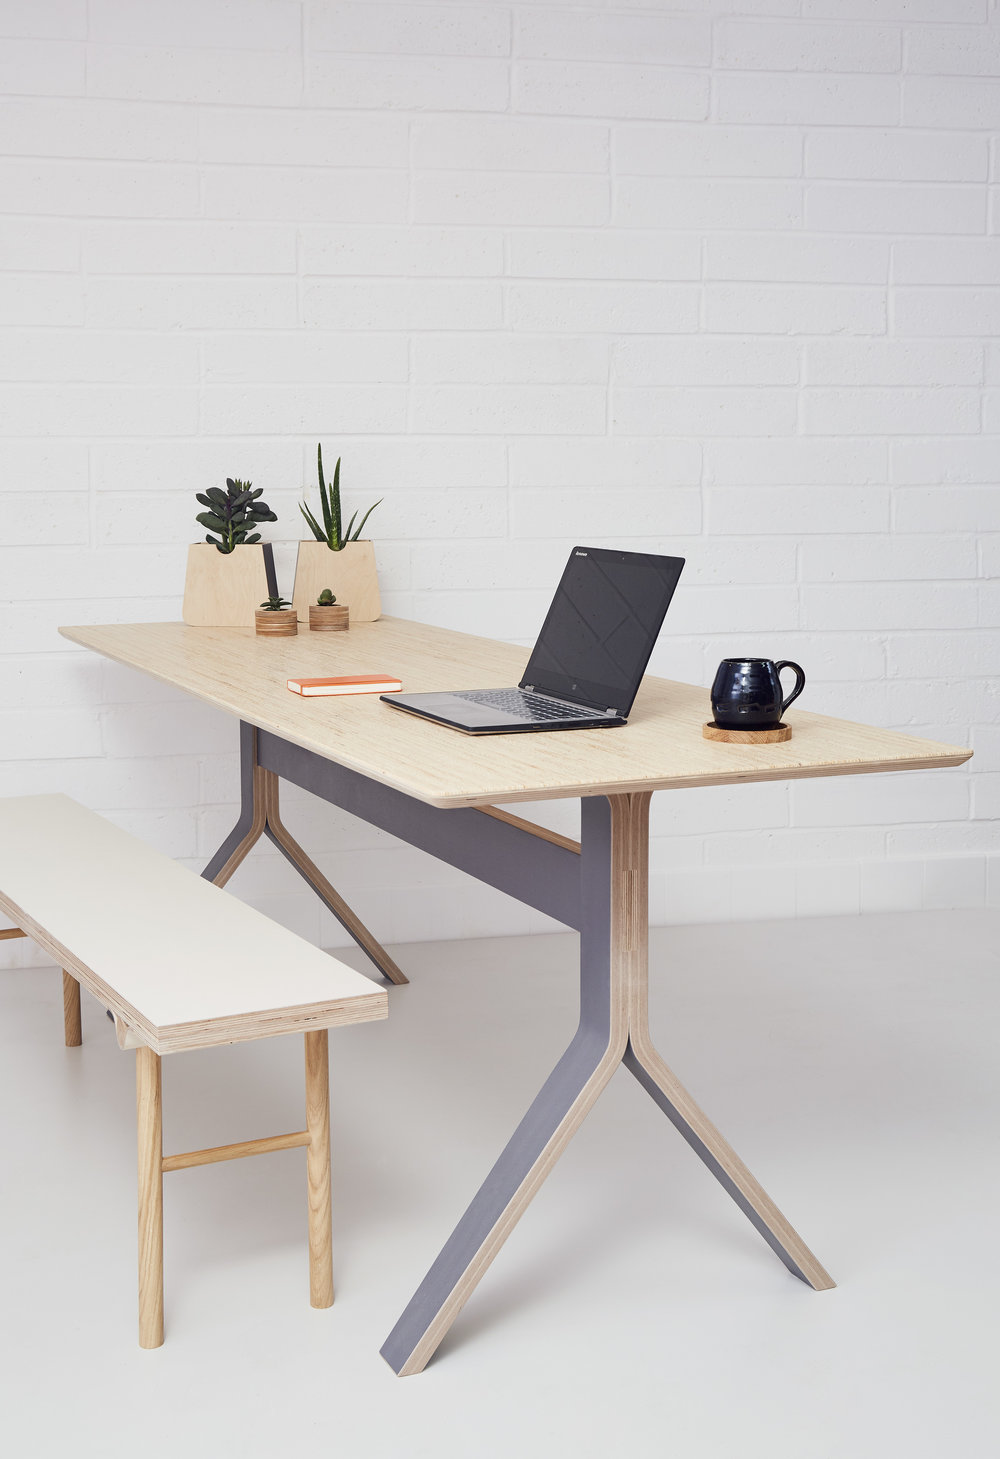 New Table, Bench, Erlen Table planter